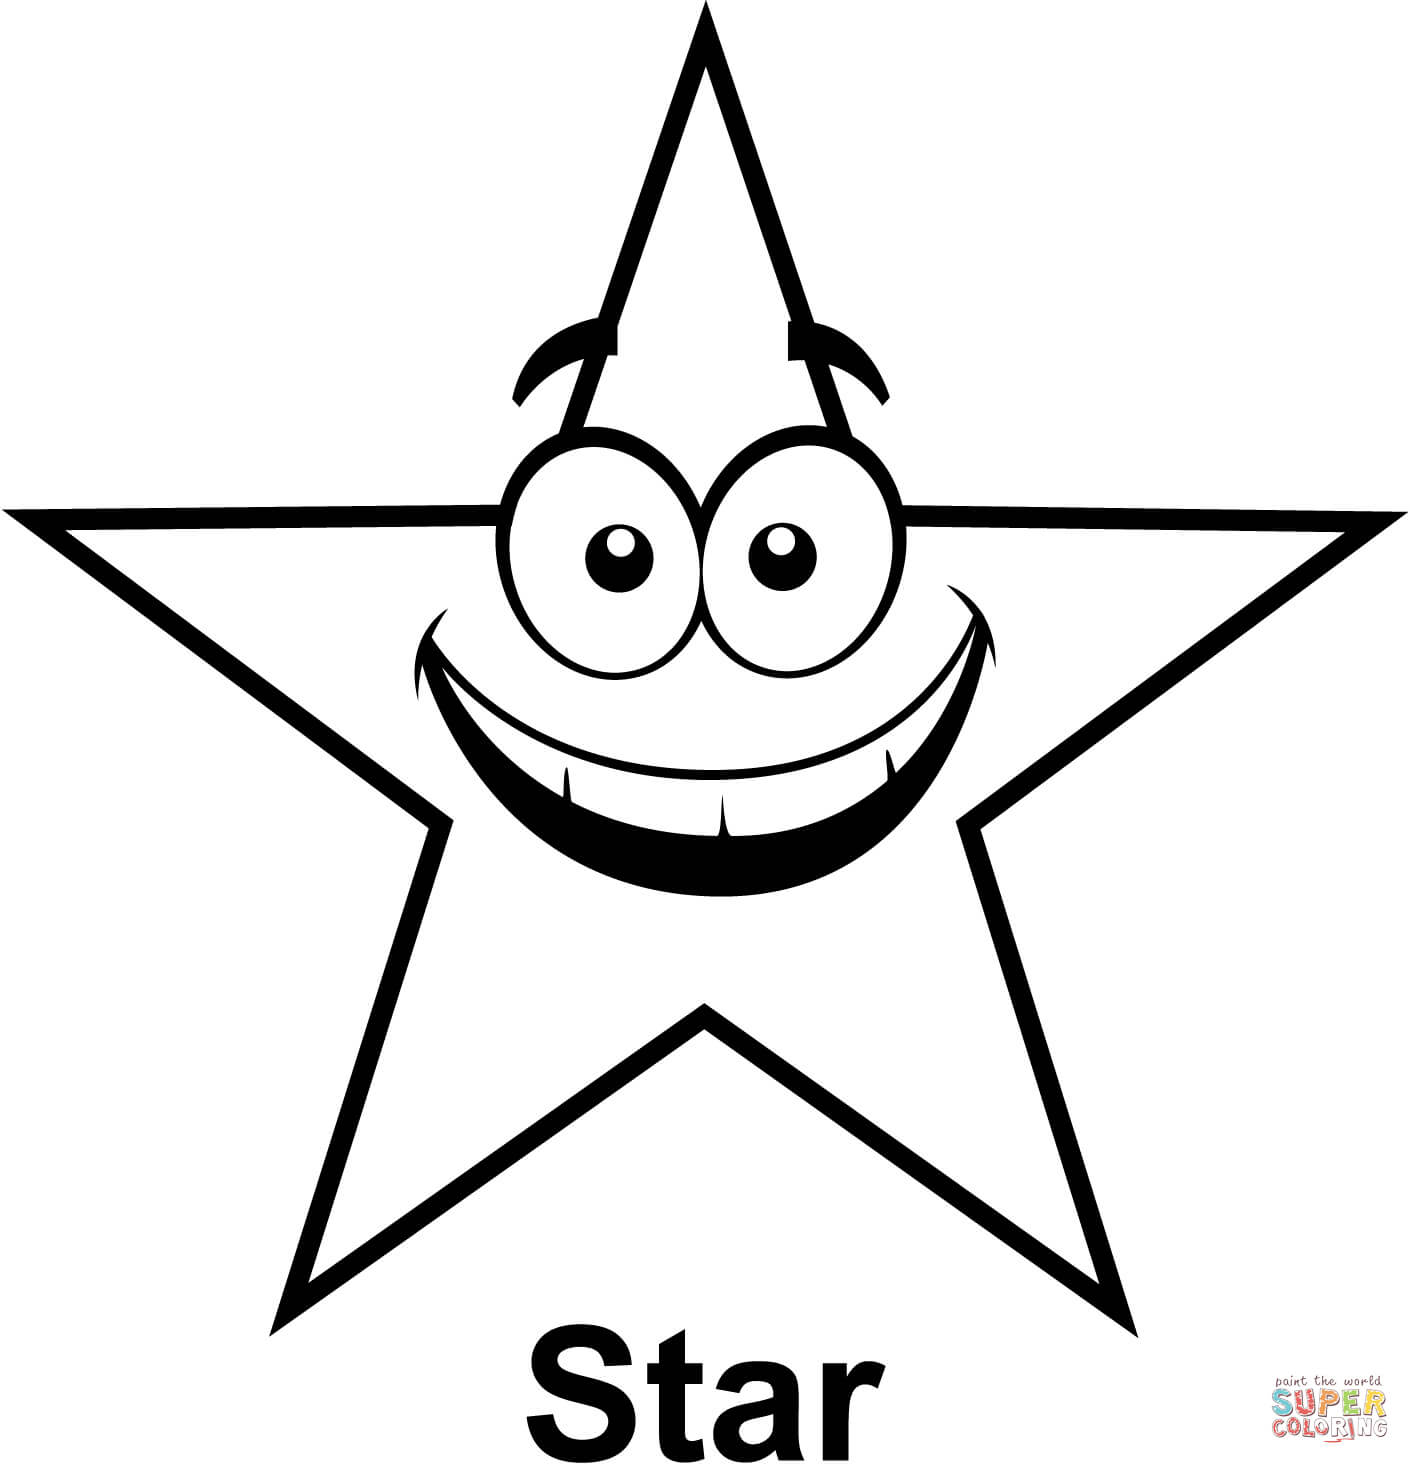 Star With Cartoon Face Coloring Page